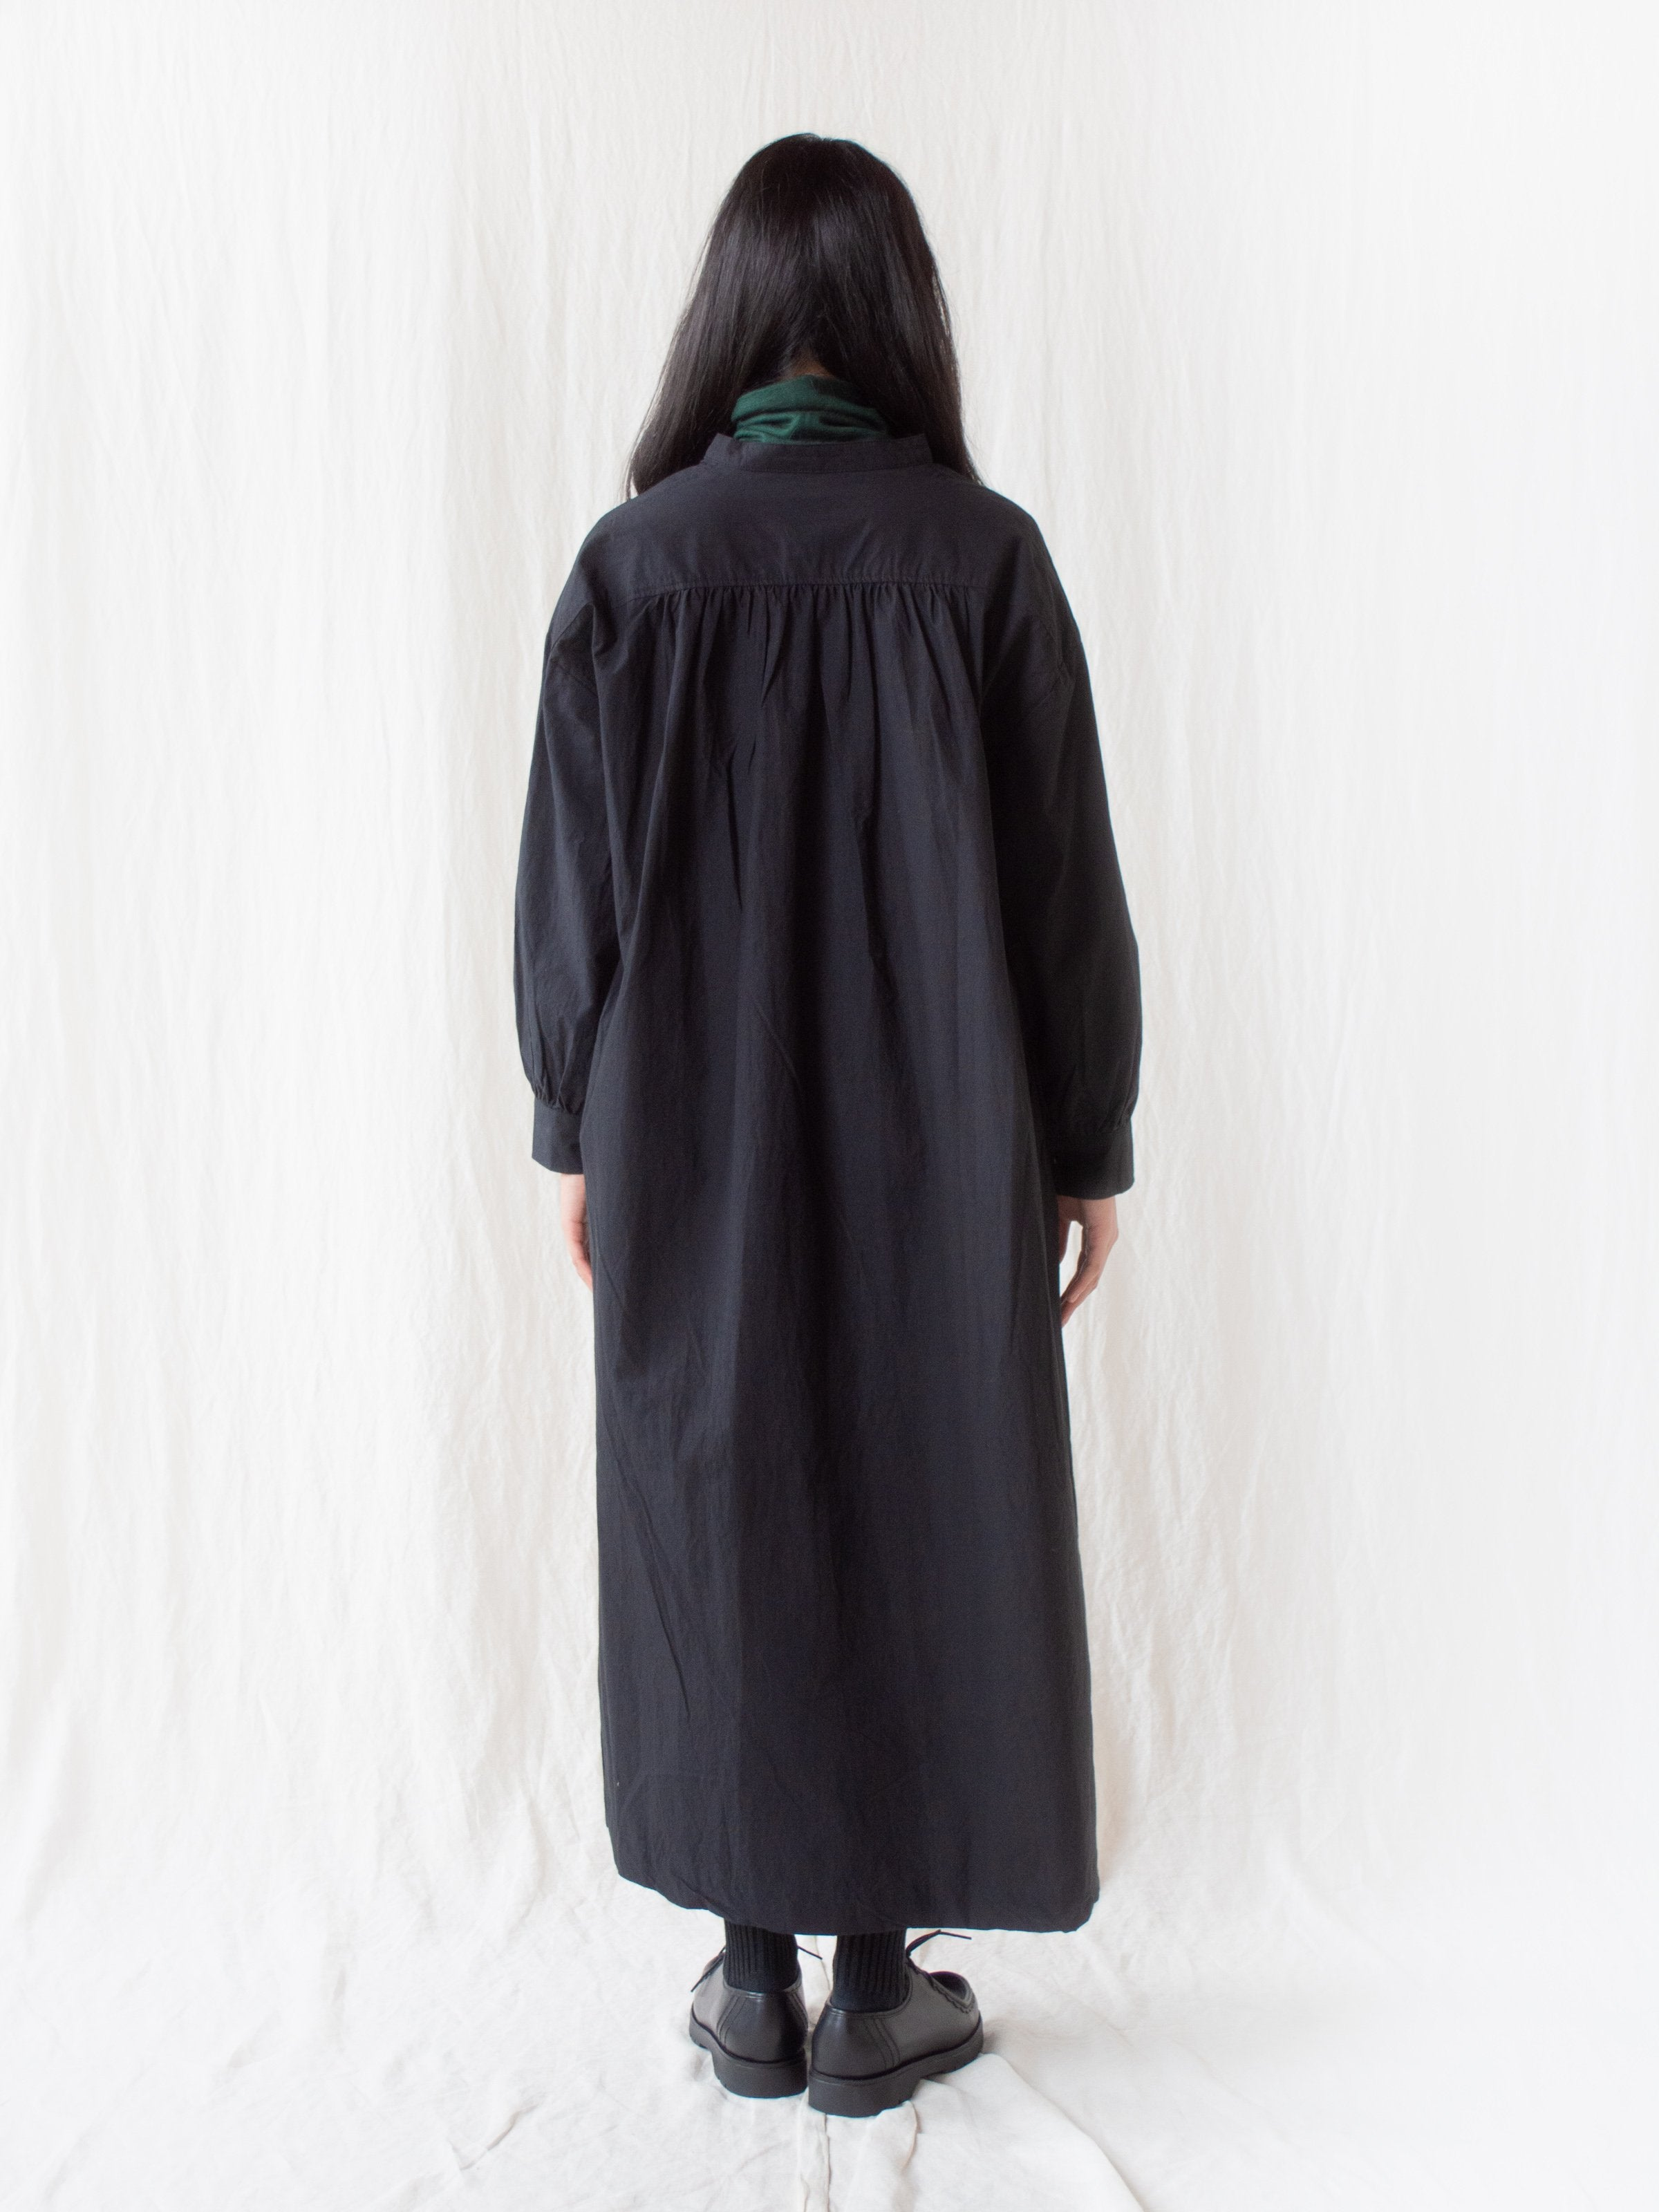 ORIHIMEDAKI Stand Collar Dress - Black